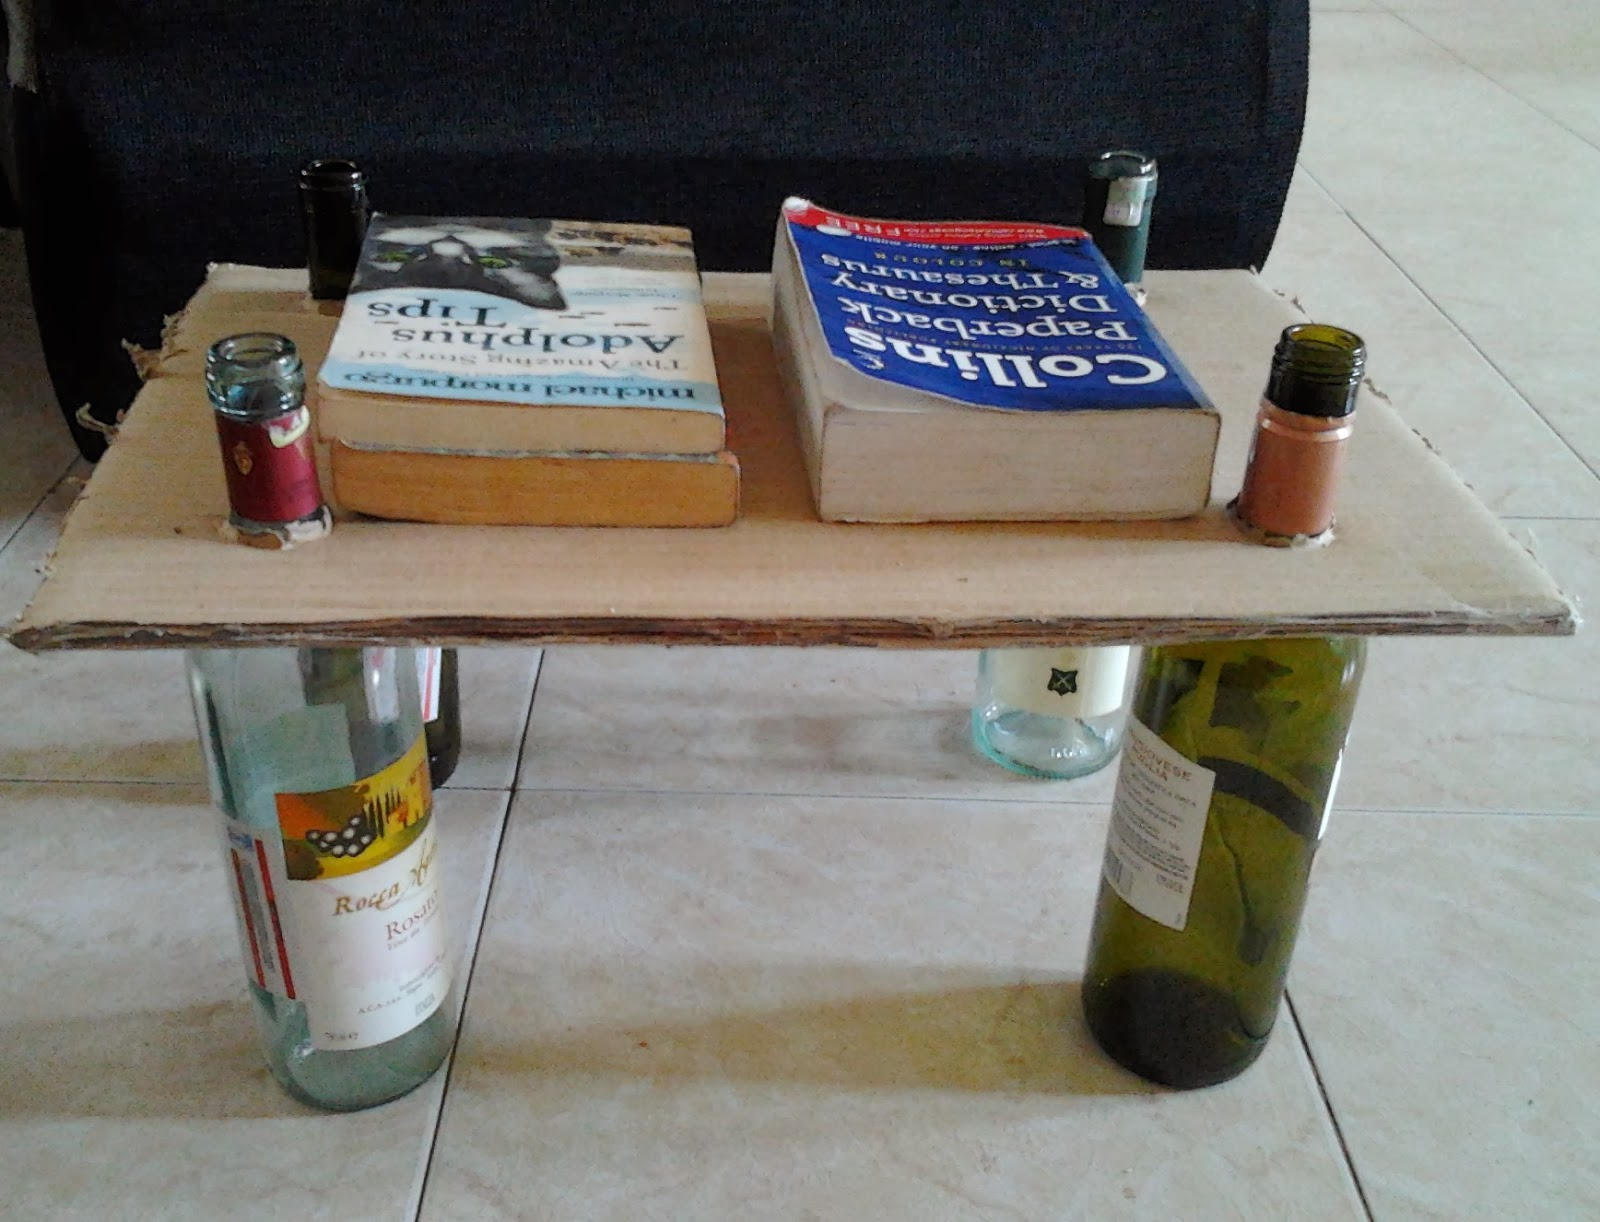 table recycled materials. Recycling By Re-Using Materials: Homemade Book Rack With Recycled Cartons And Bottles Table Materials C